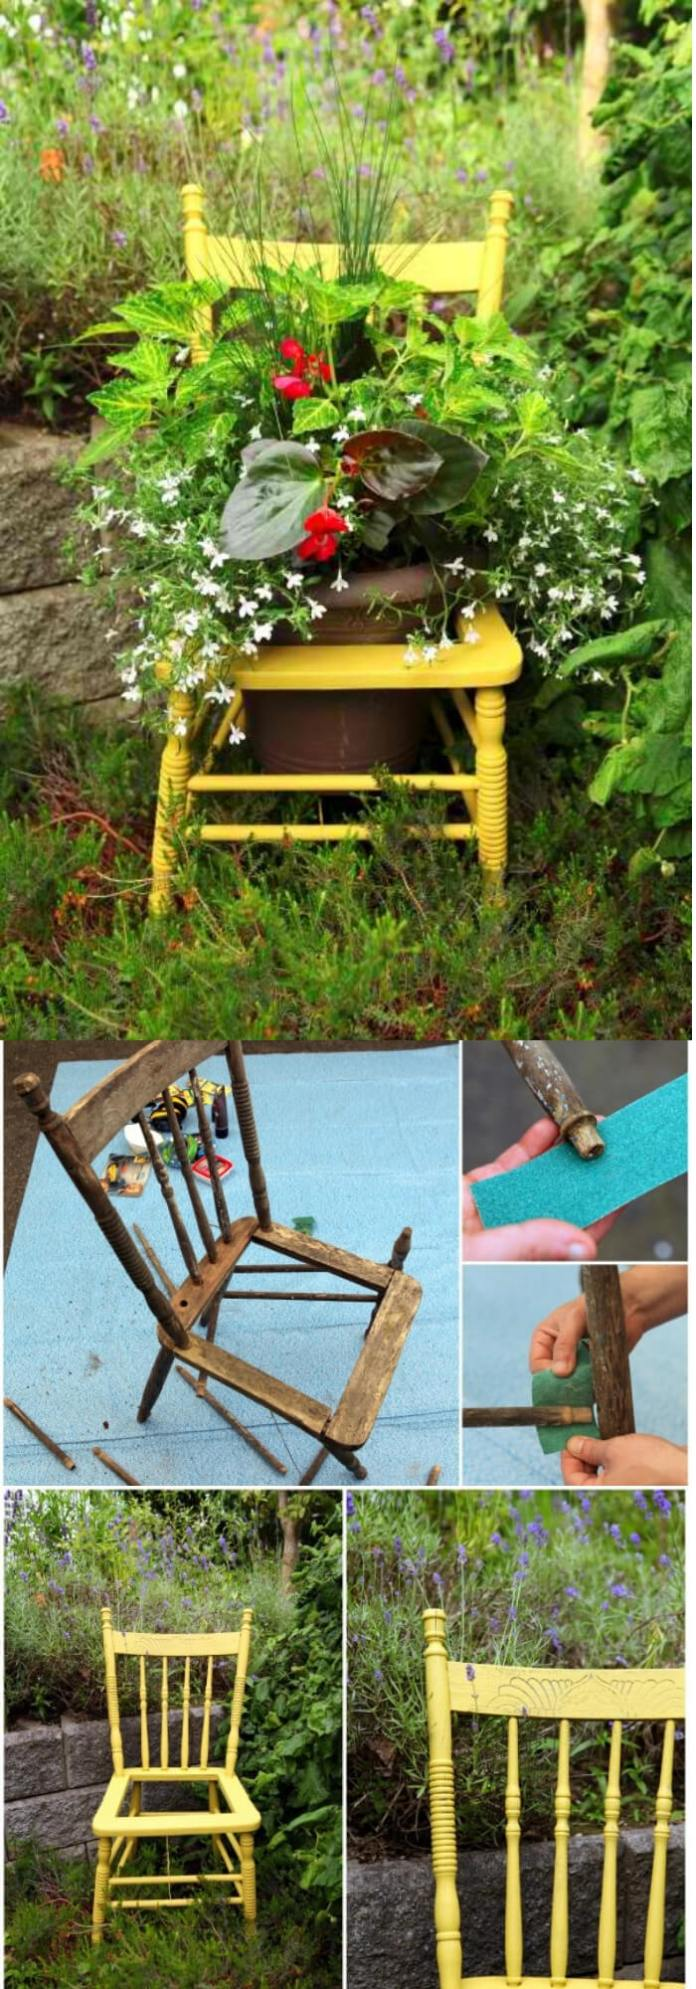 Piece of sunshine | Creative Upcycled DIY Chair Planter Ideas For Your Garden